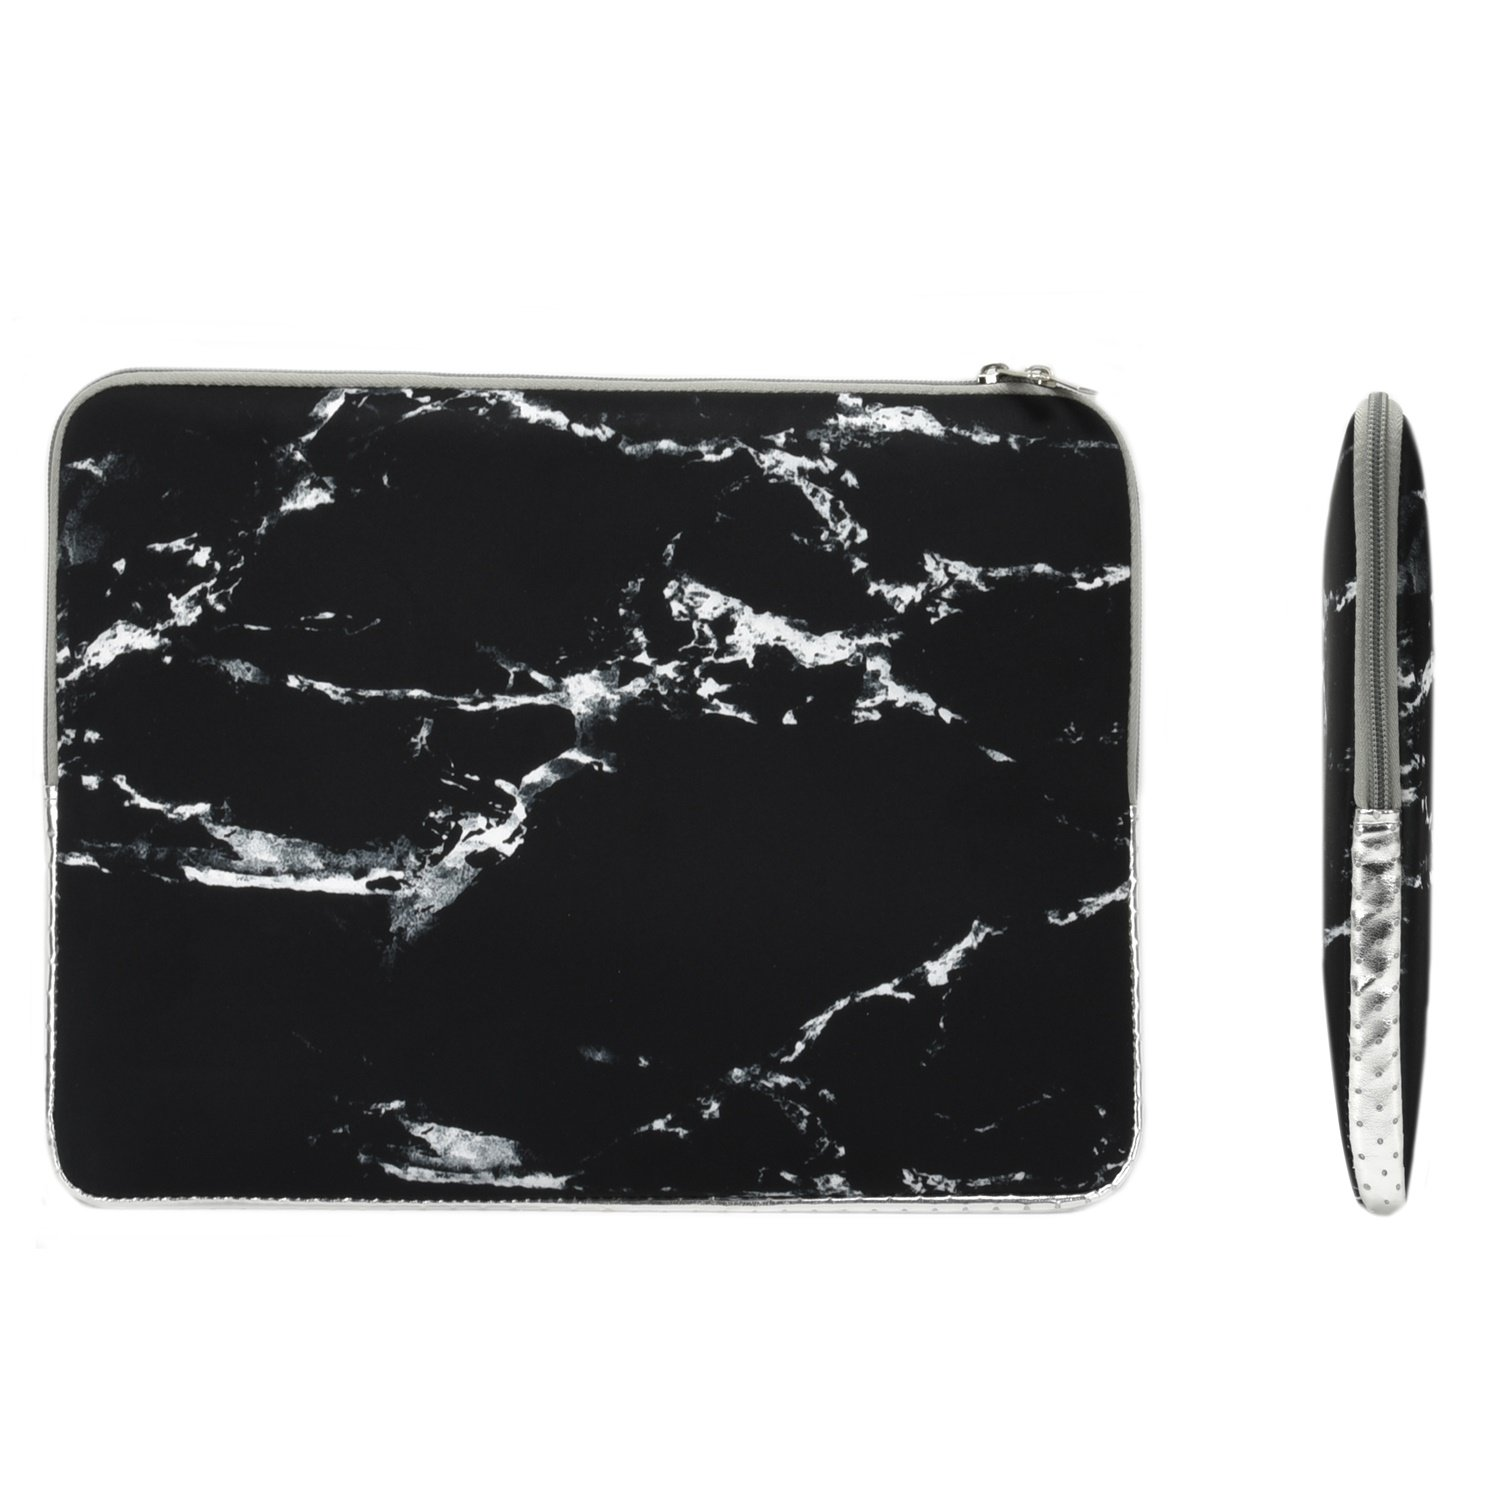 """TOP CASE - Marble Pattern Zipper Sleeve Bag Case Compatible with All Laptop 11"""" 11-inch MacBook Air/Ultrabook/Chromebook Mouse Pad - Black"""